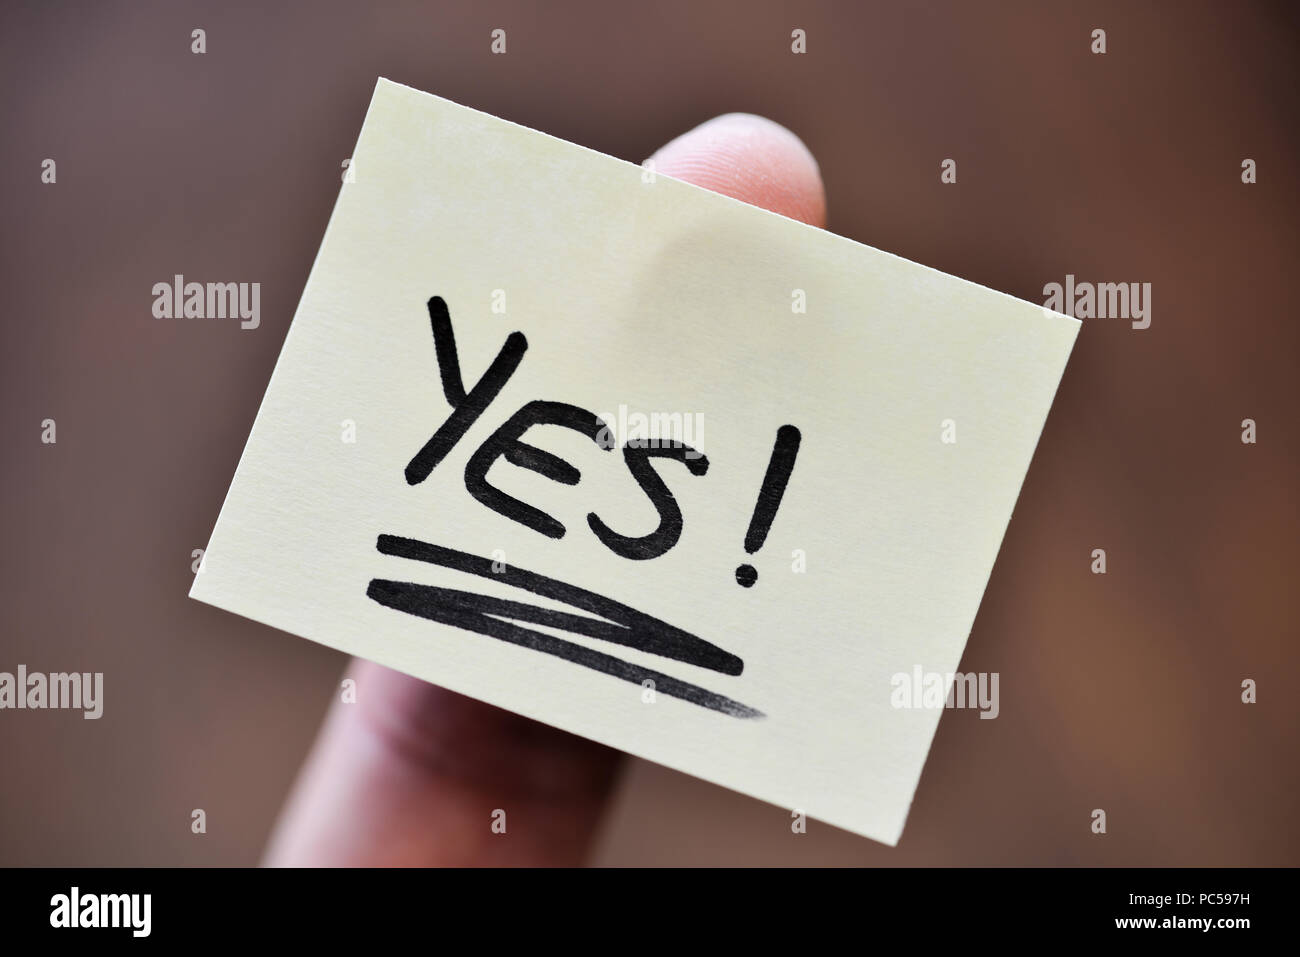 Success / Goal Concept - Index Finger Holding Note With Handwritten YES Word - Stock Image